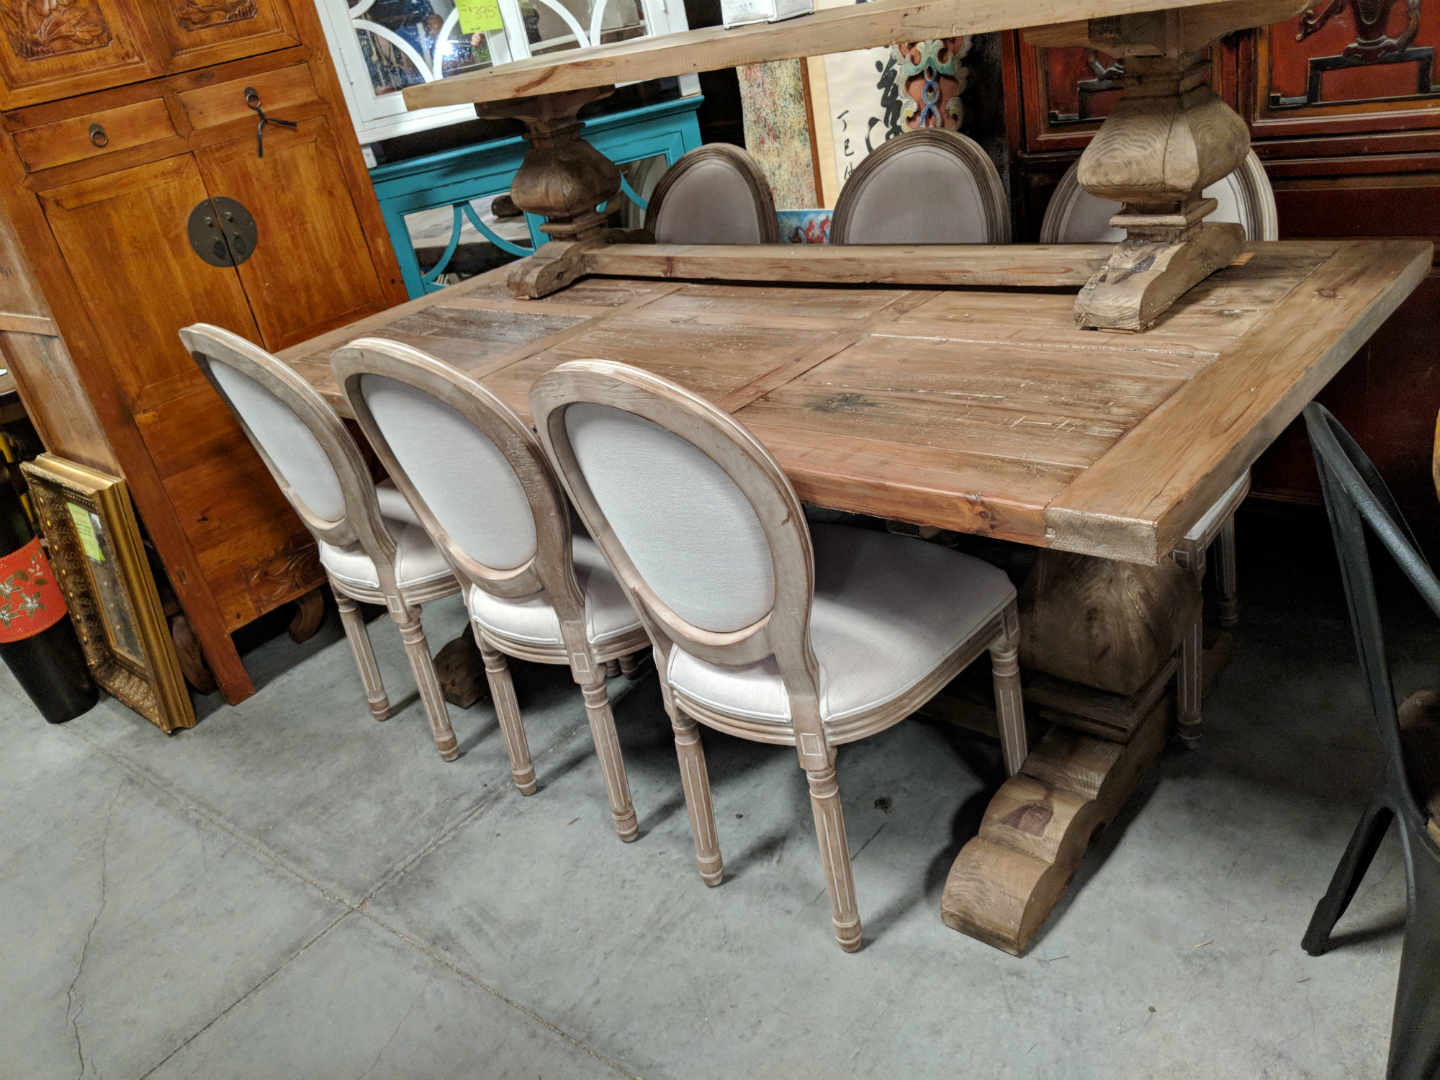 Rustic Farmhouse Dining Tables - Solid Wood Furniture from Decor